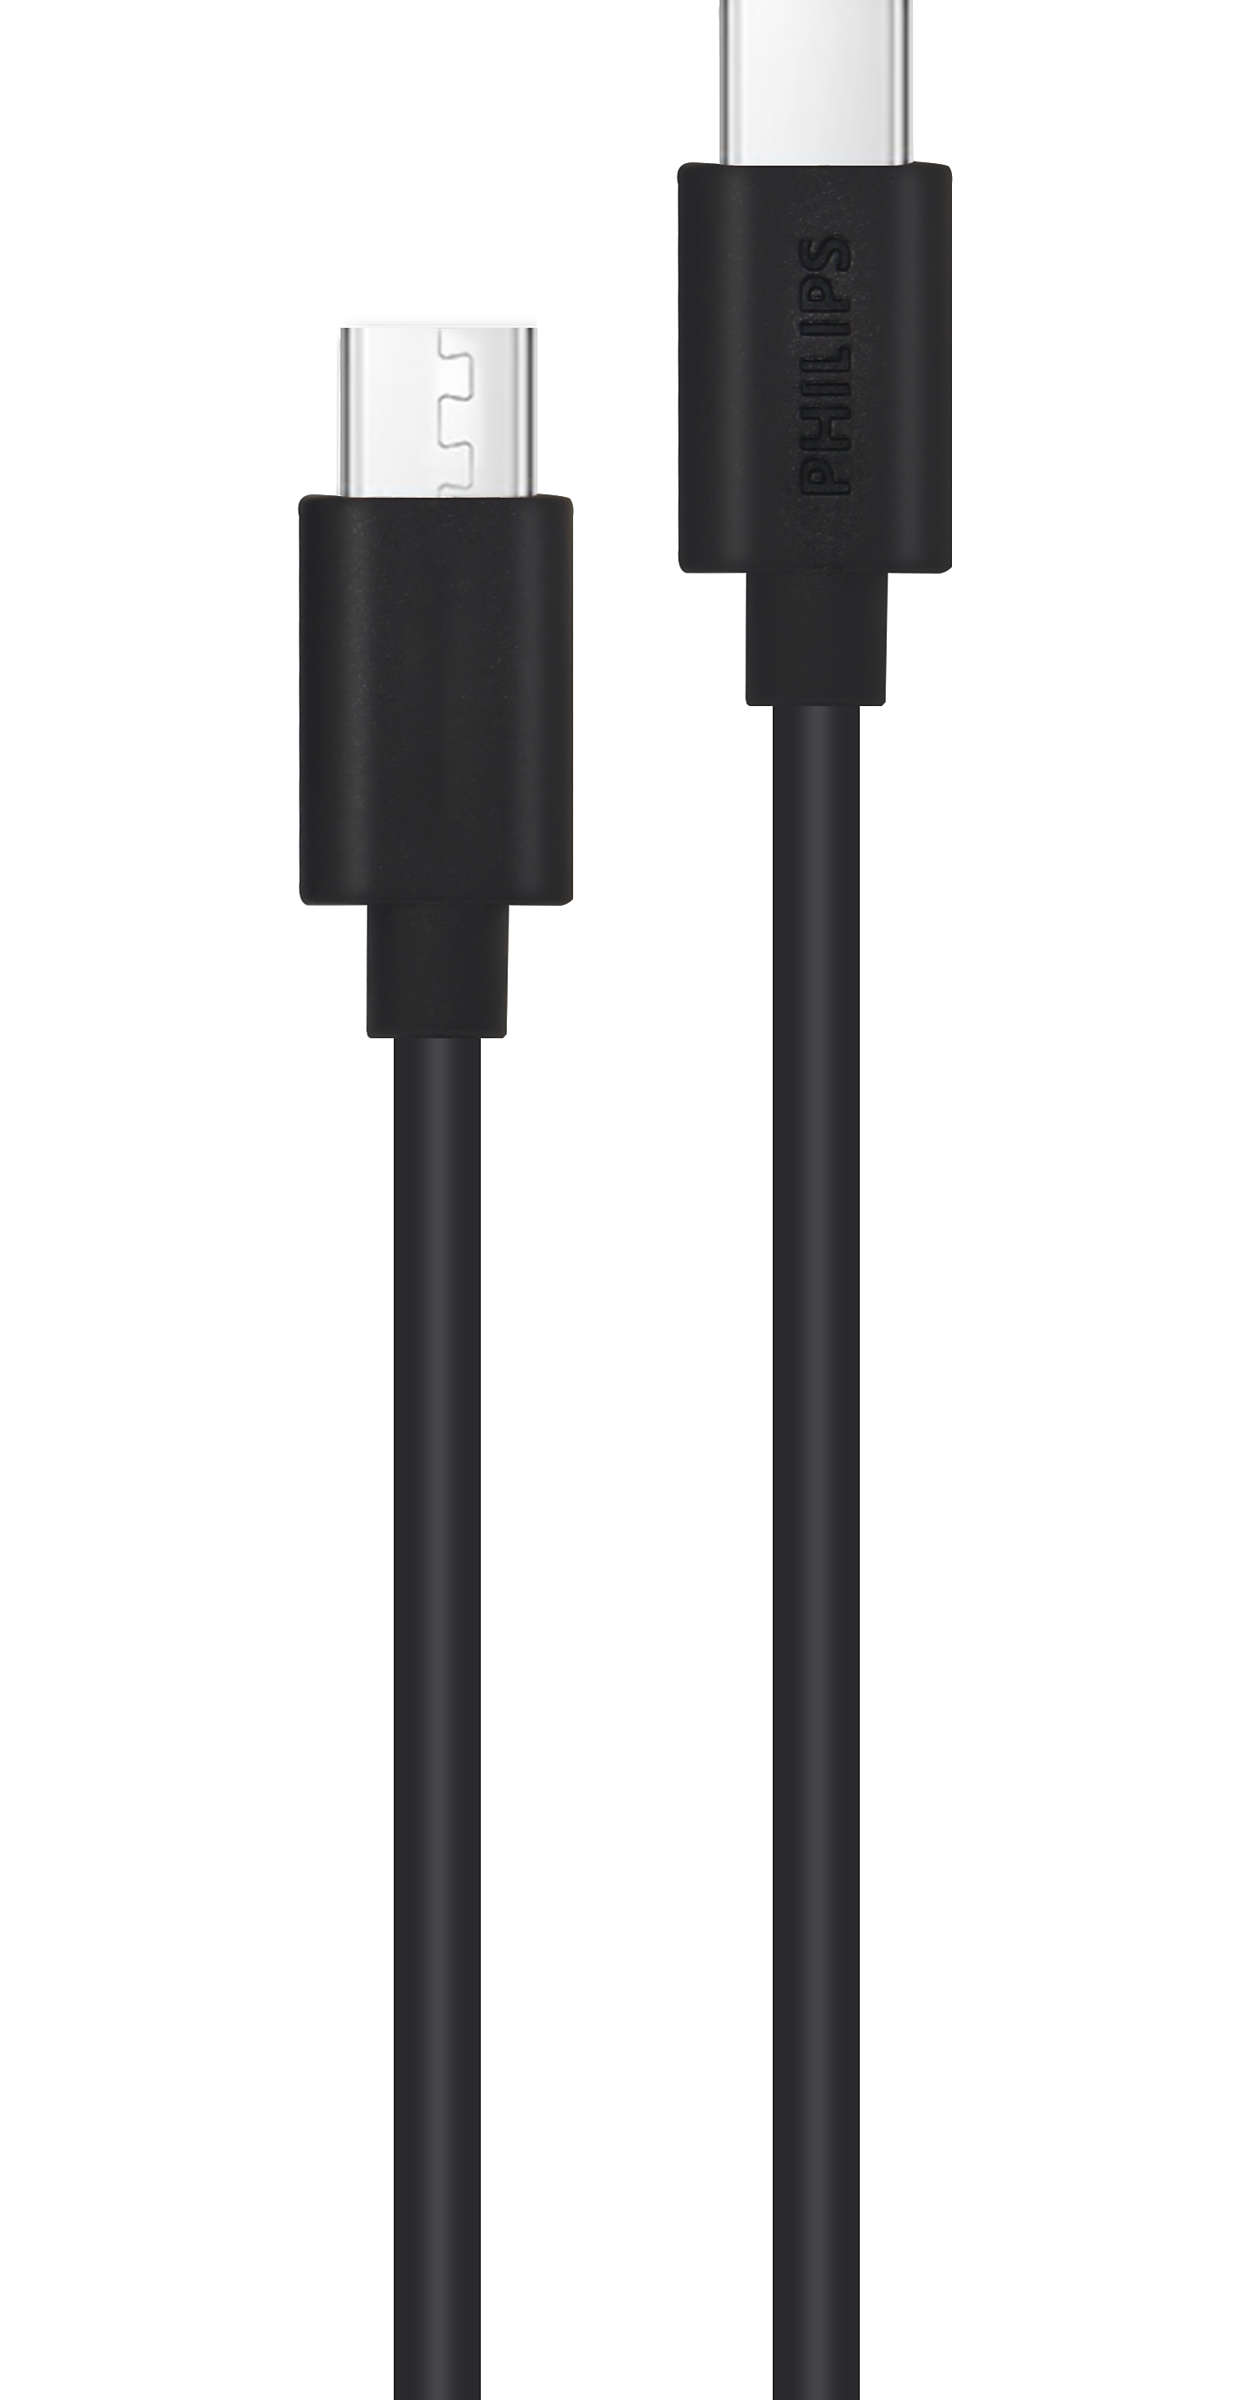 1.2 m USB-C to USB-C cable